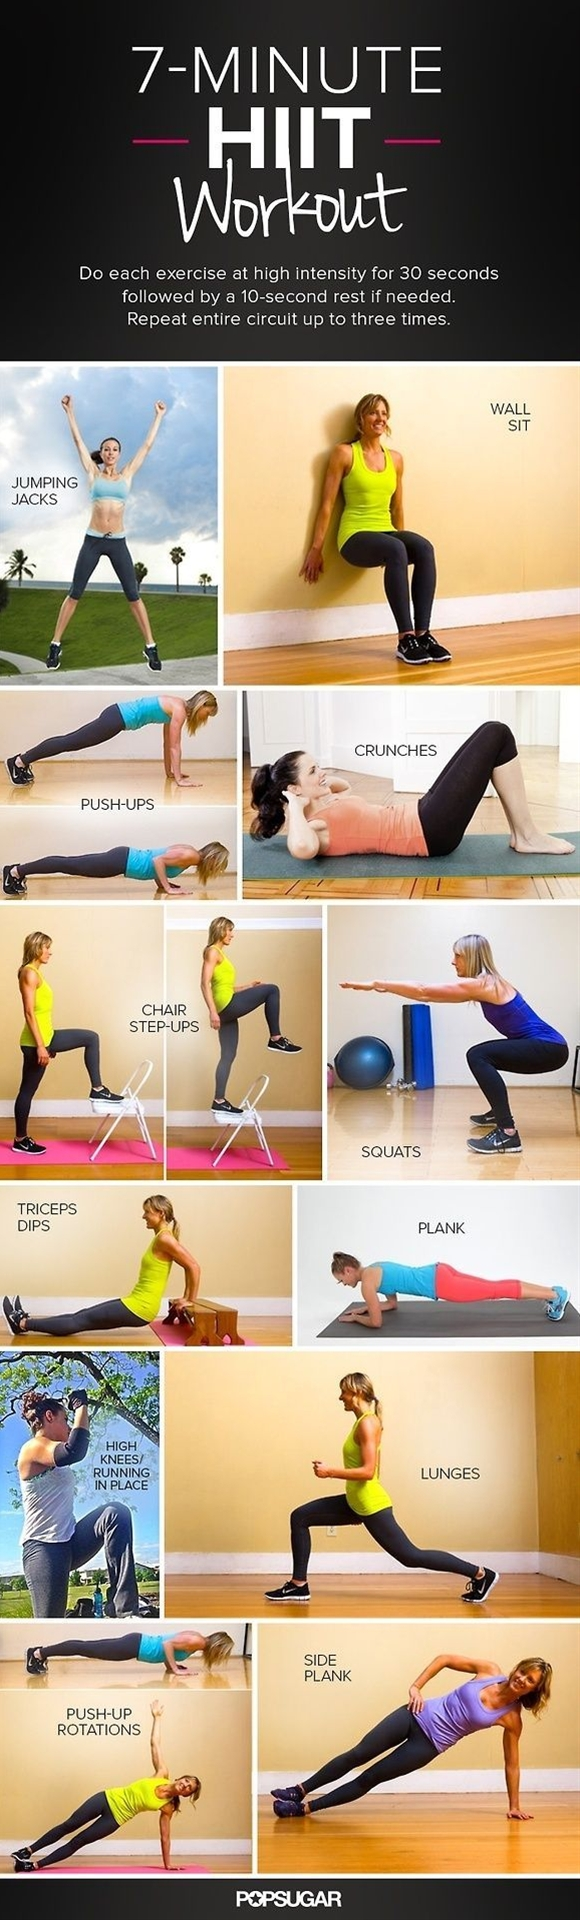 Seven minutes for a workout — who doesn't have time for that? That's why we've been loving this quick circuit workout from the American College of Sports Medicine, which burns major calories in a short amount of time.